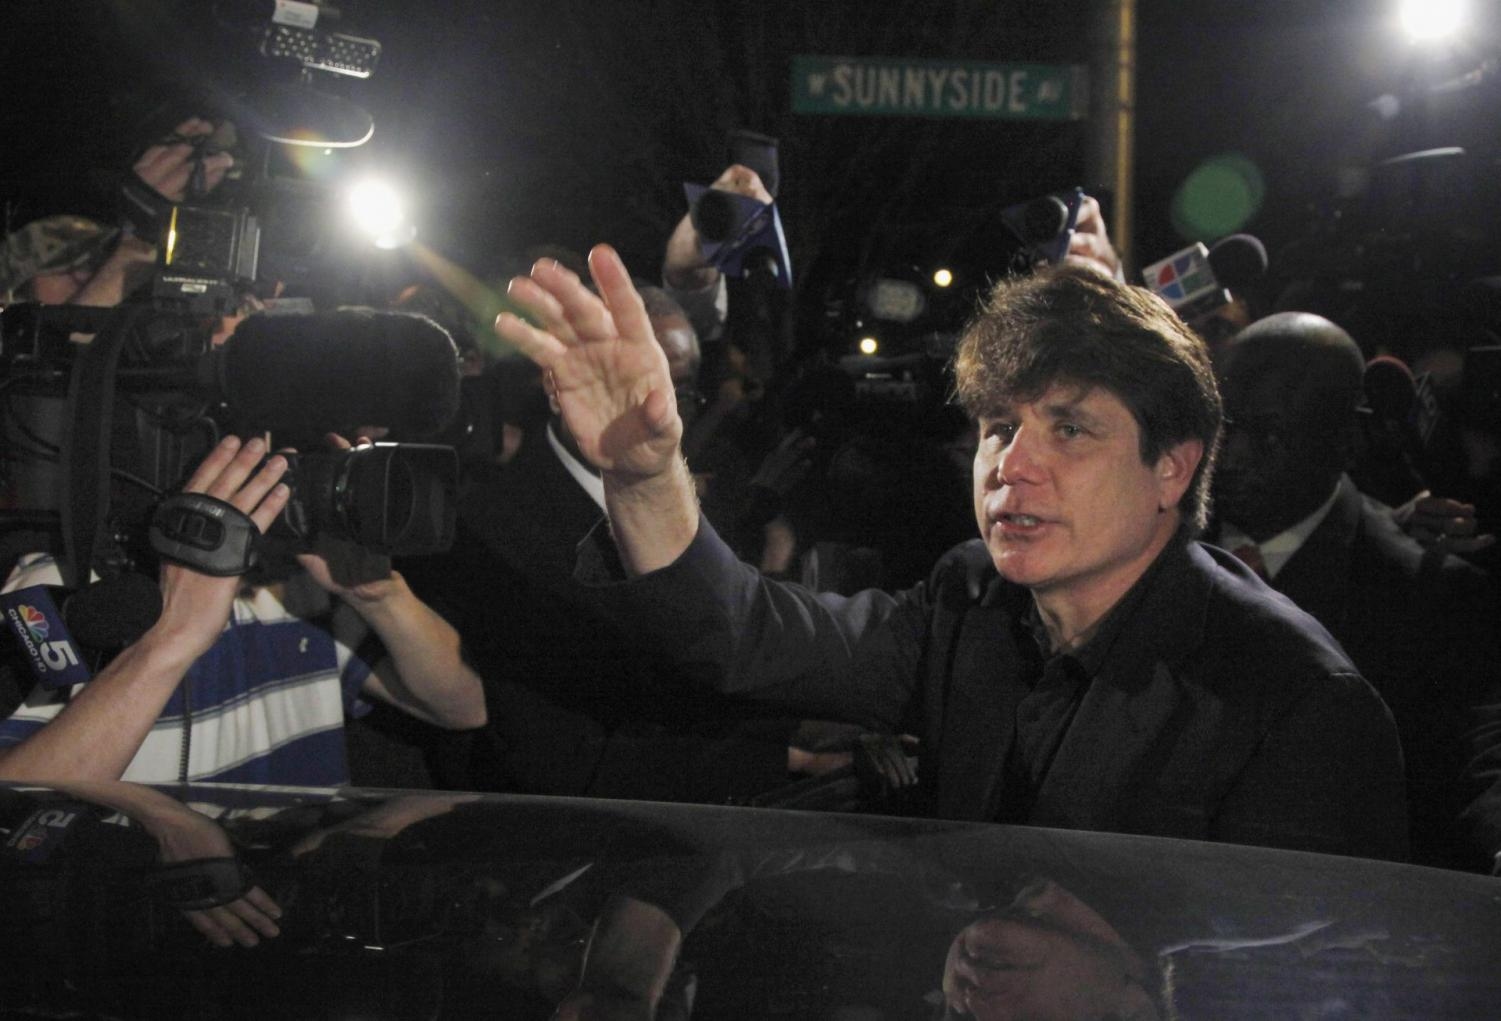 In this March 15, 2012 file photo, former Democratic Illinois Gov. Rod Blagojevich departs his Chicago home for Littleton, Colo., to begin his 14-year prison sentence on corruption charges. Blagojevich, authored, a column appearing on the conservative website Newsmax Jan. 1, 2020, arguing that Democrats in the U.S. House of Representatives would have tried to impeach former President Abraham Lincoln.